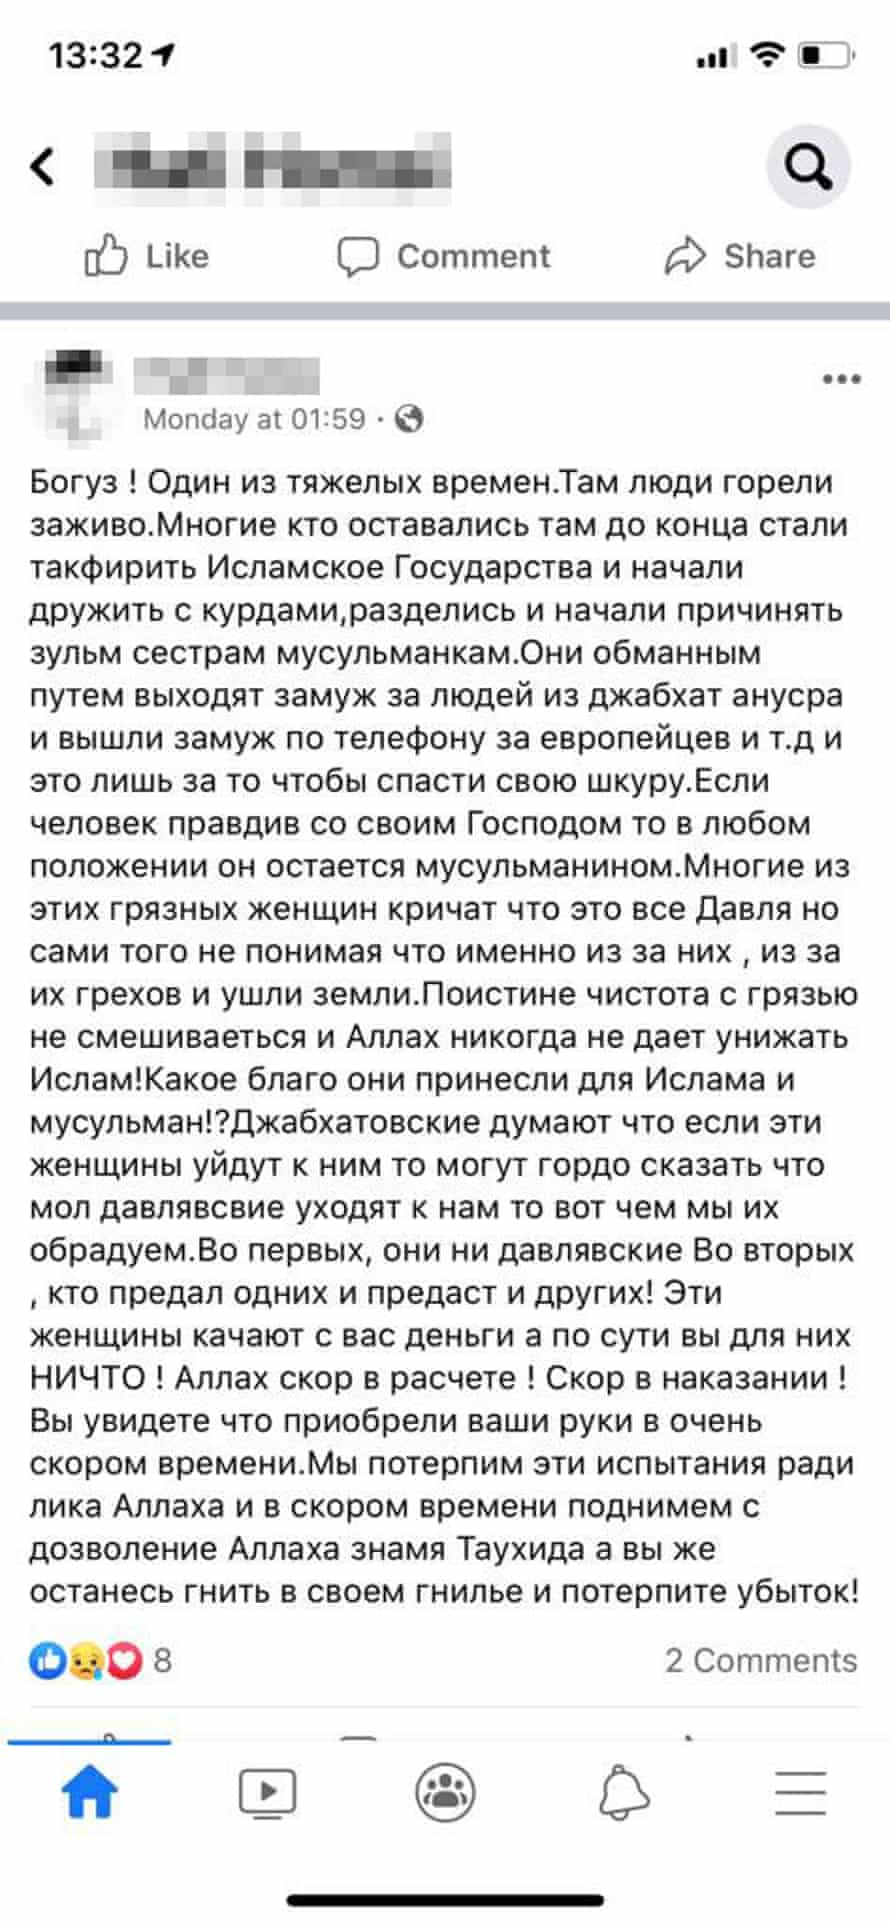 Post from a pro-Isis Russian woman in the camp